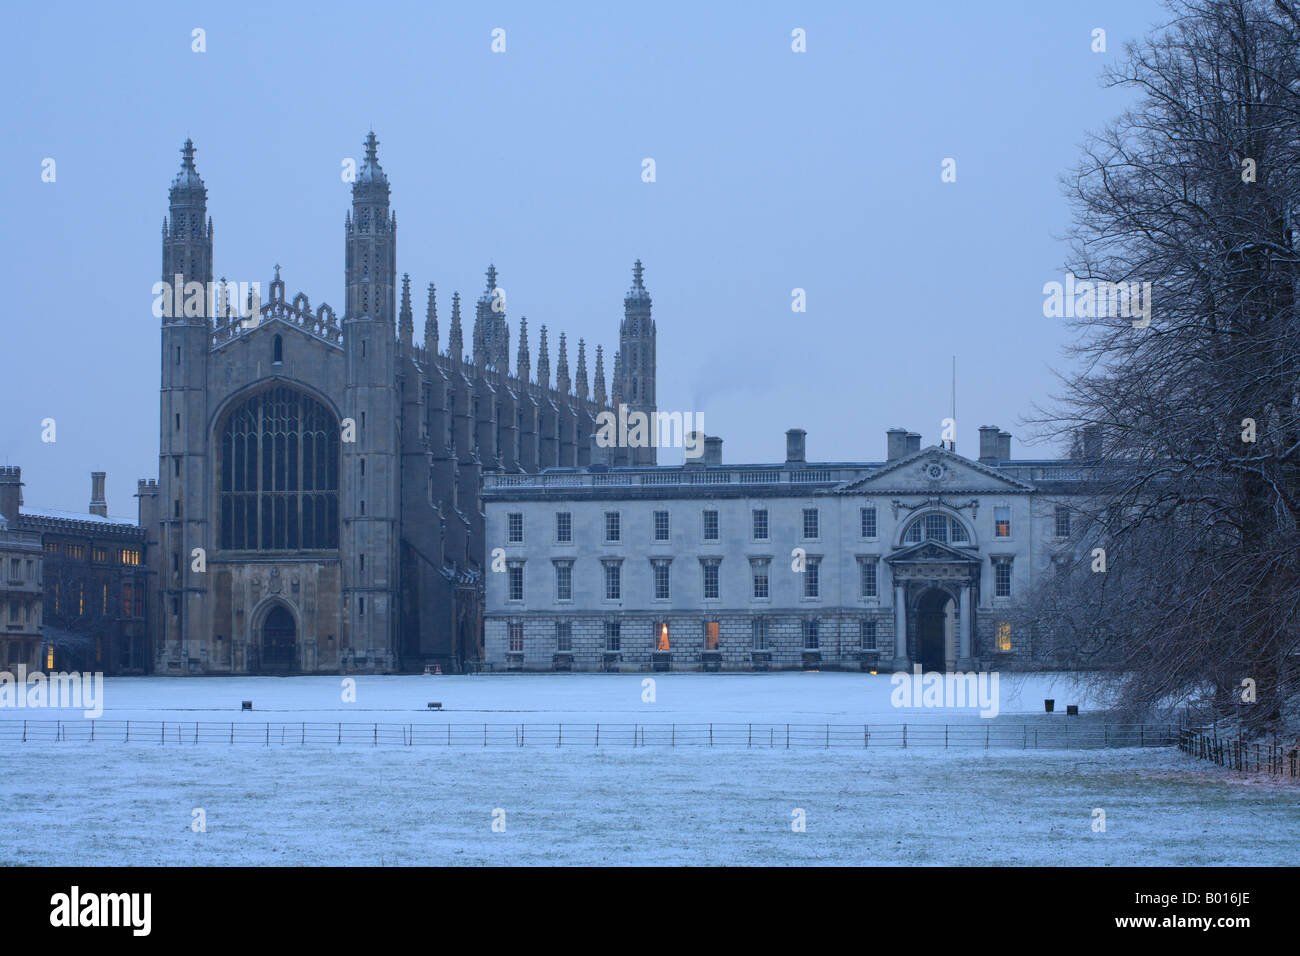 'Kings College Cambridge University' on a cold frosty 'winter morning' - Stock Image